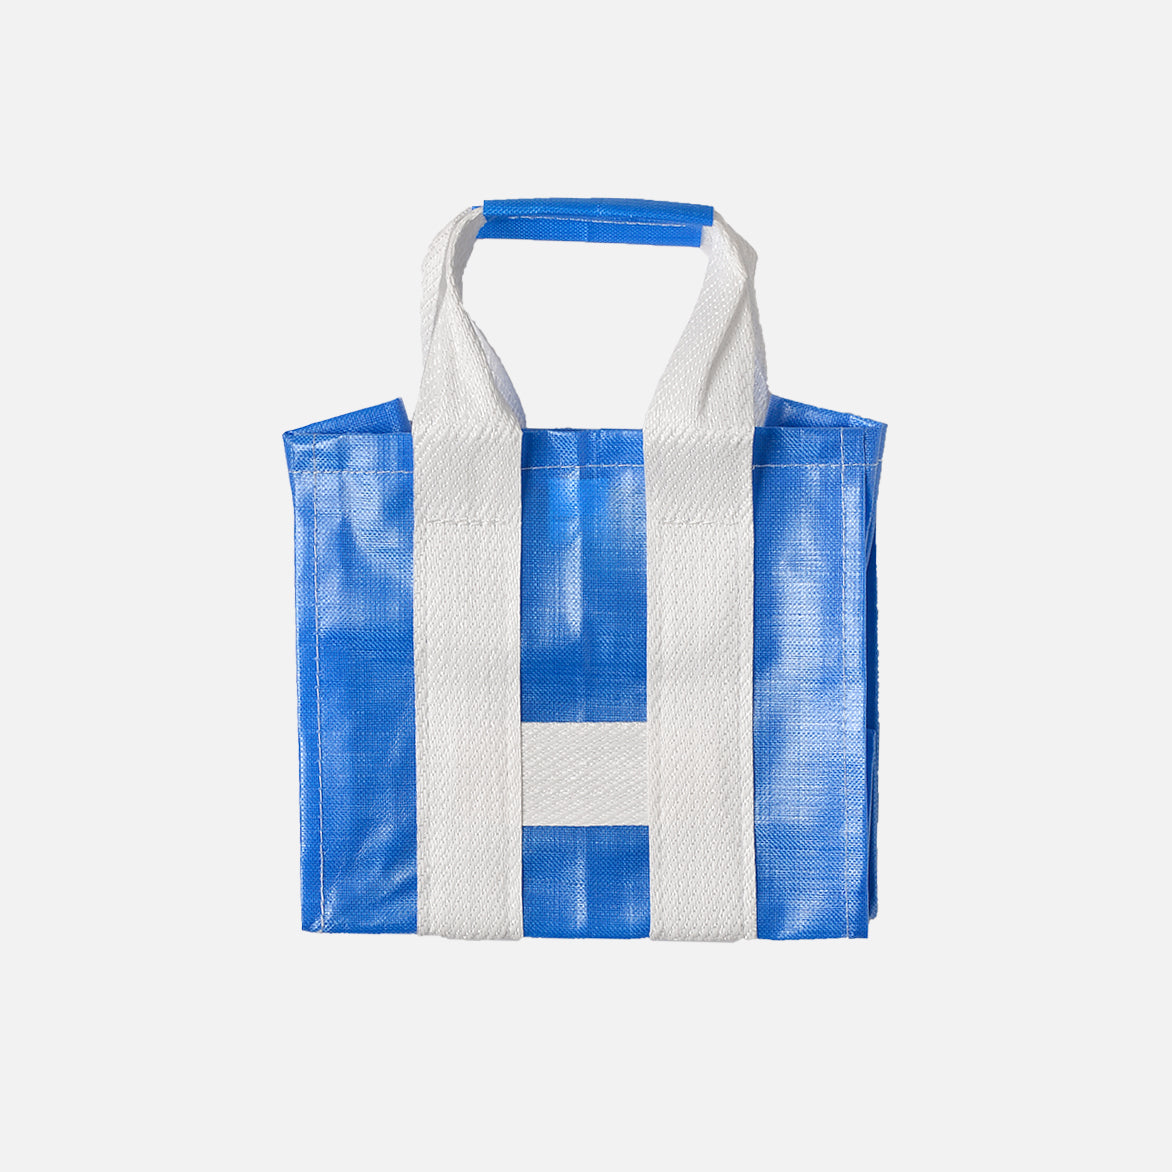 PVC SHOPPER TOTE - BLUE / WHITE